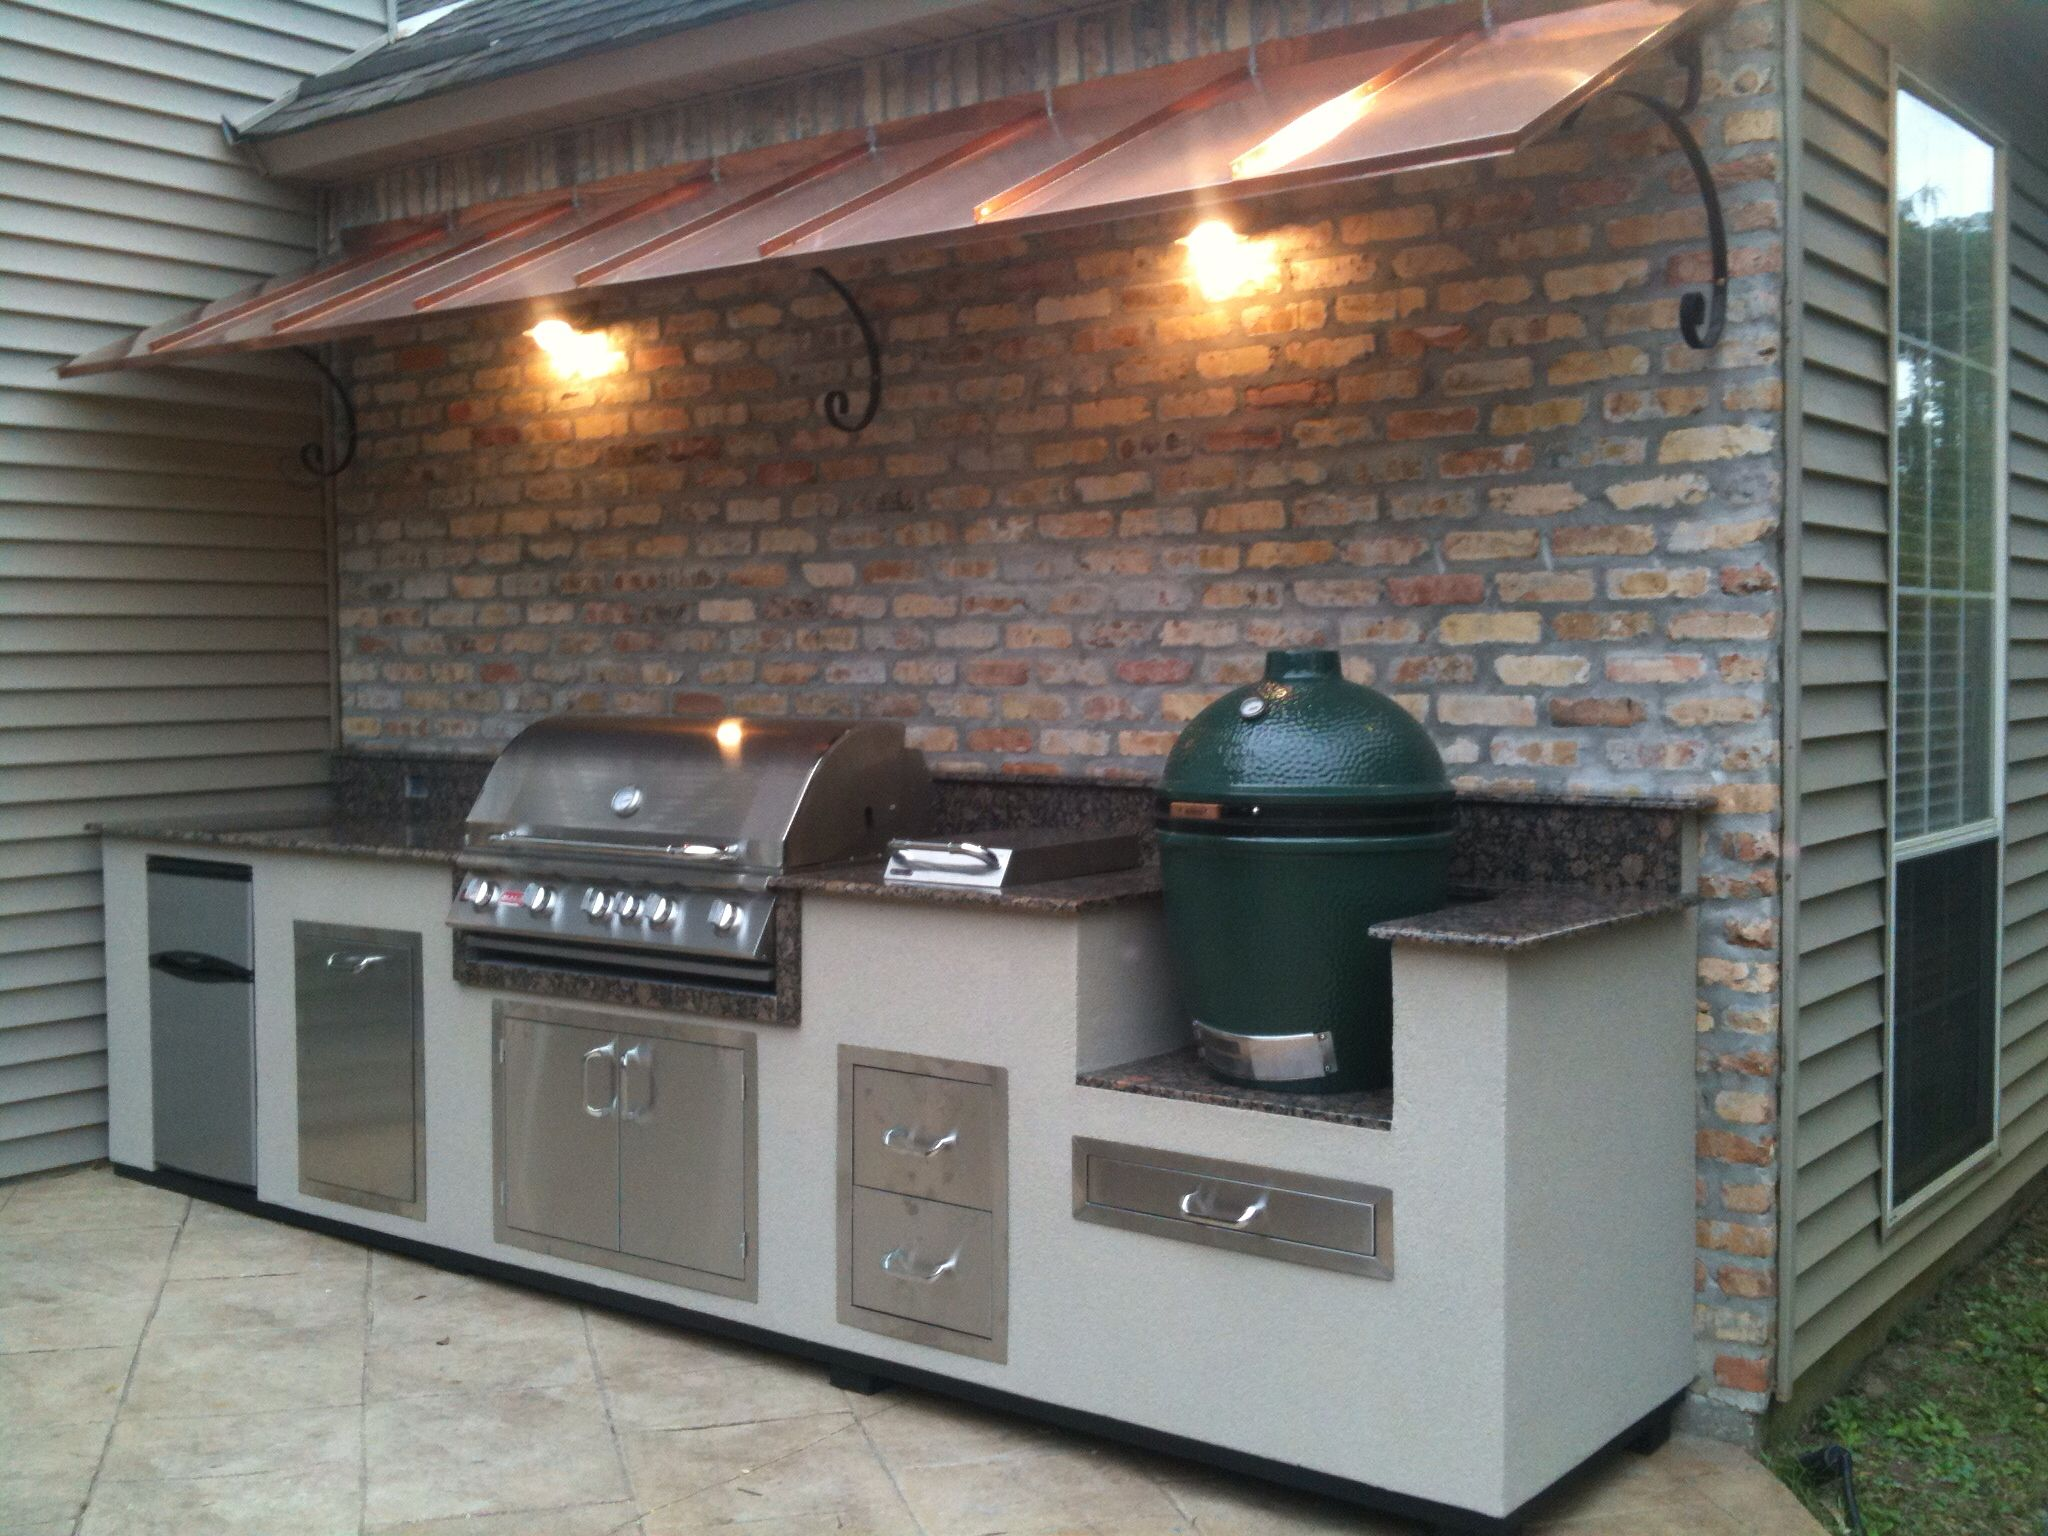 The Charcoal Vs Gas Debate Can End With The Three Best Combination Grills Outdoor Kitchen Design Backyard Kitchen Outdoor Kitchen